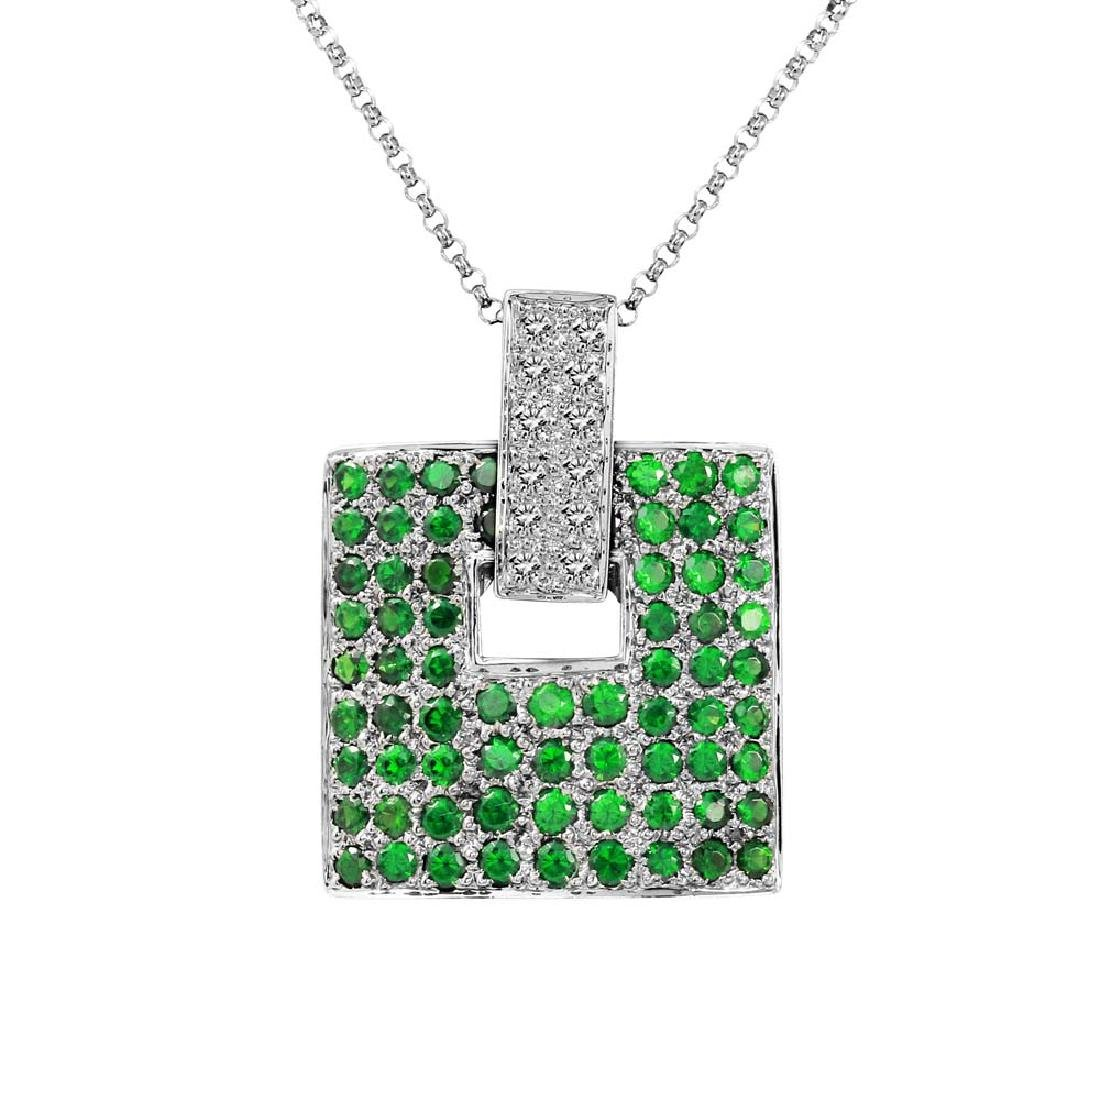 Genuine 2.02 TCW 14K White Gold Ladies Necklace